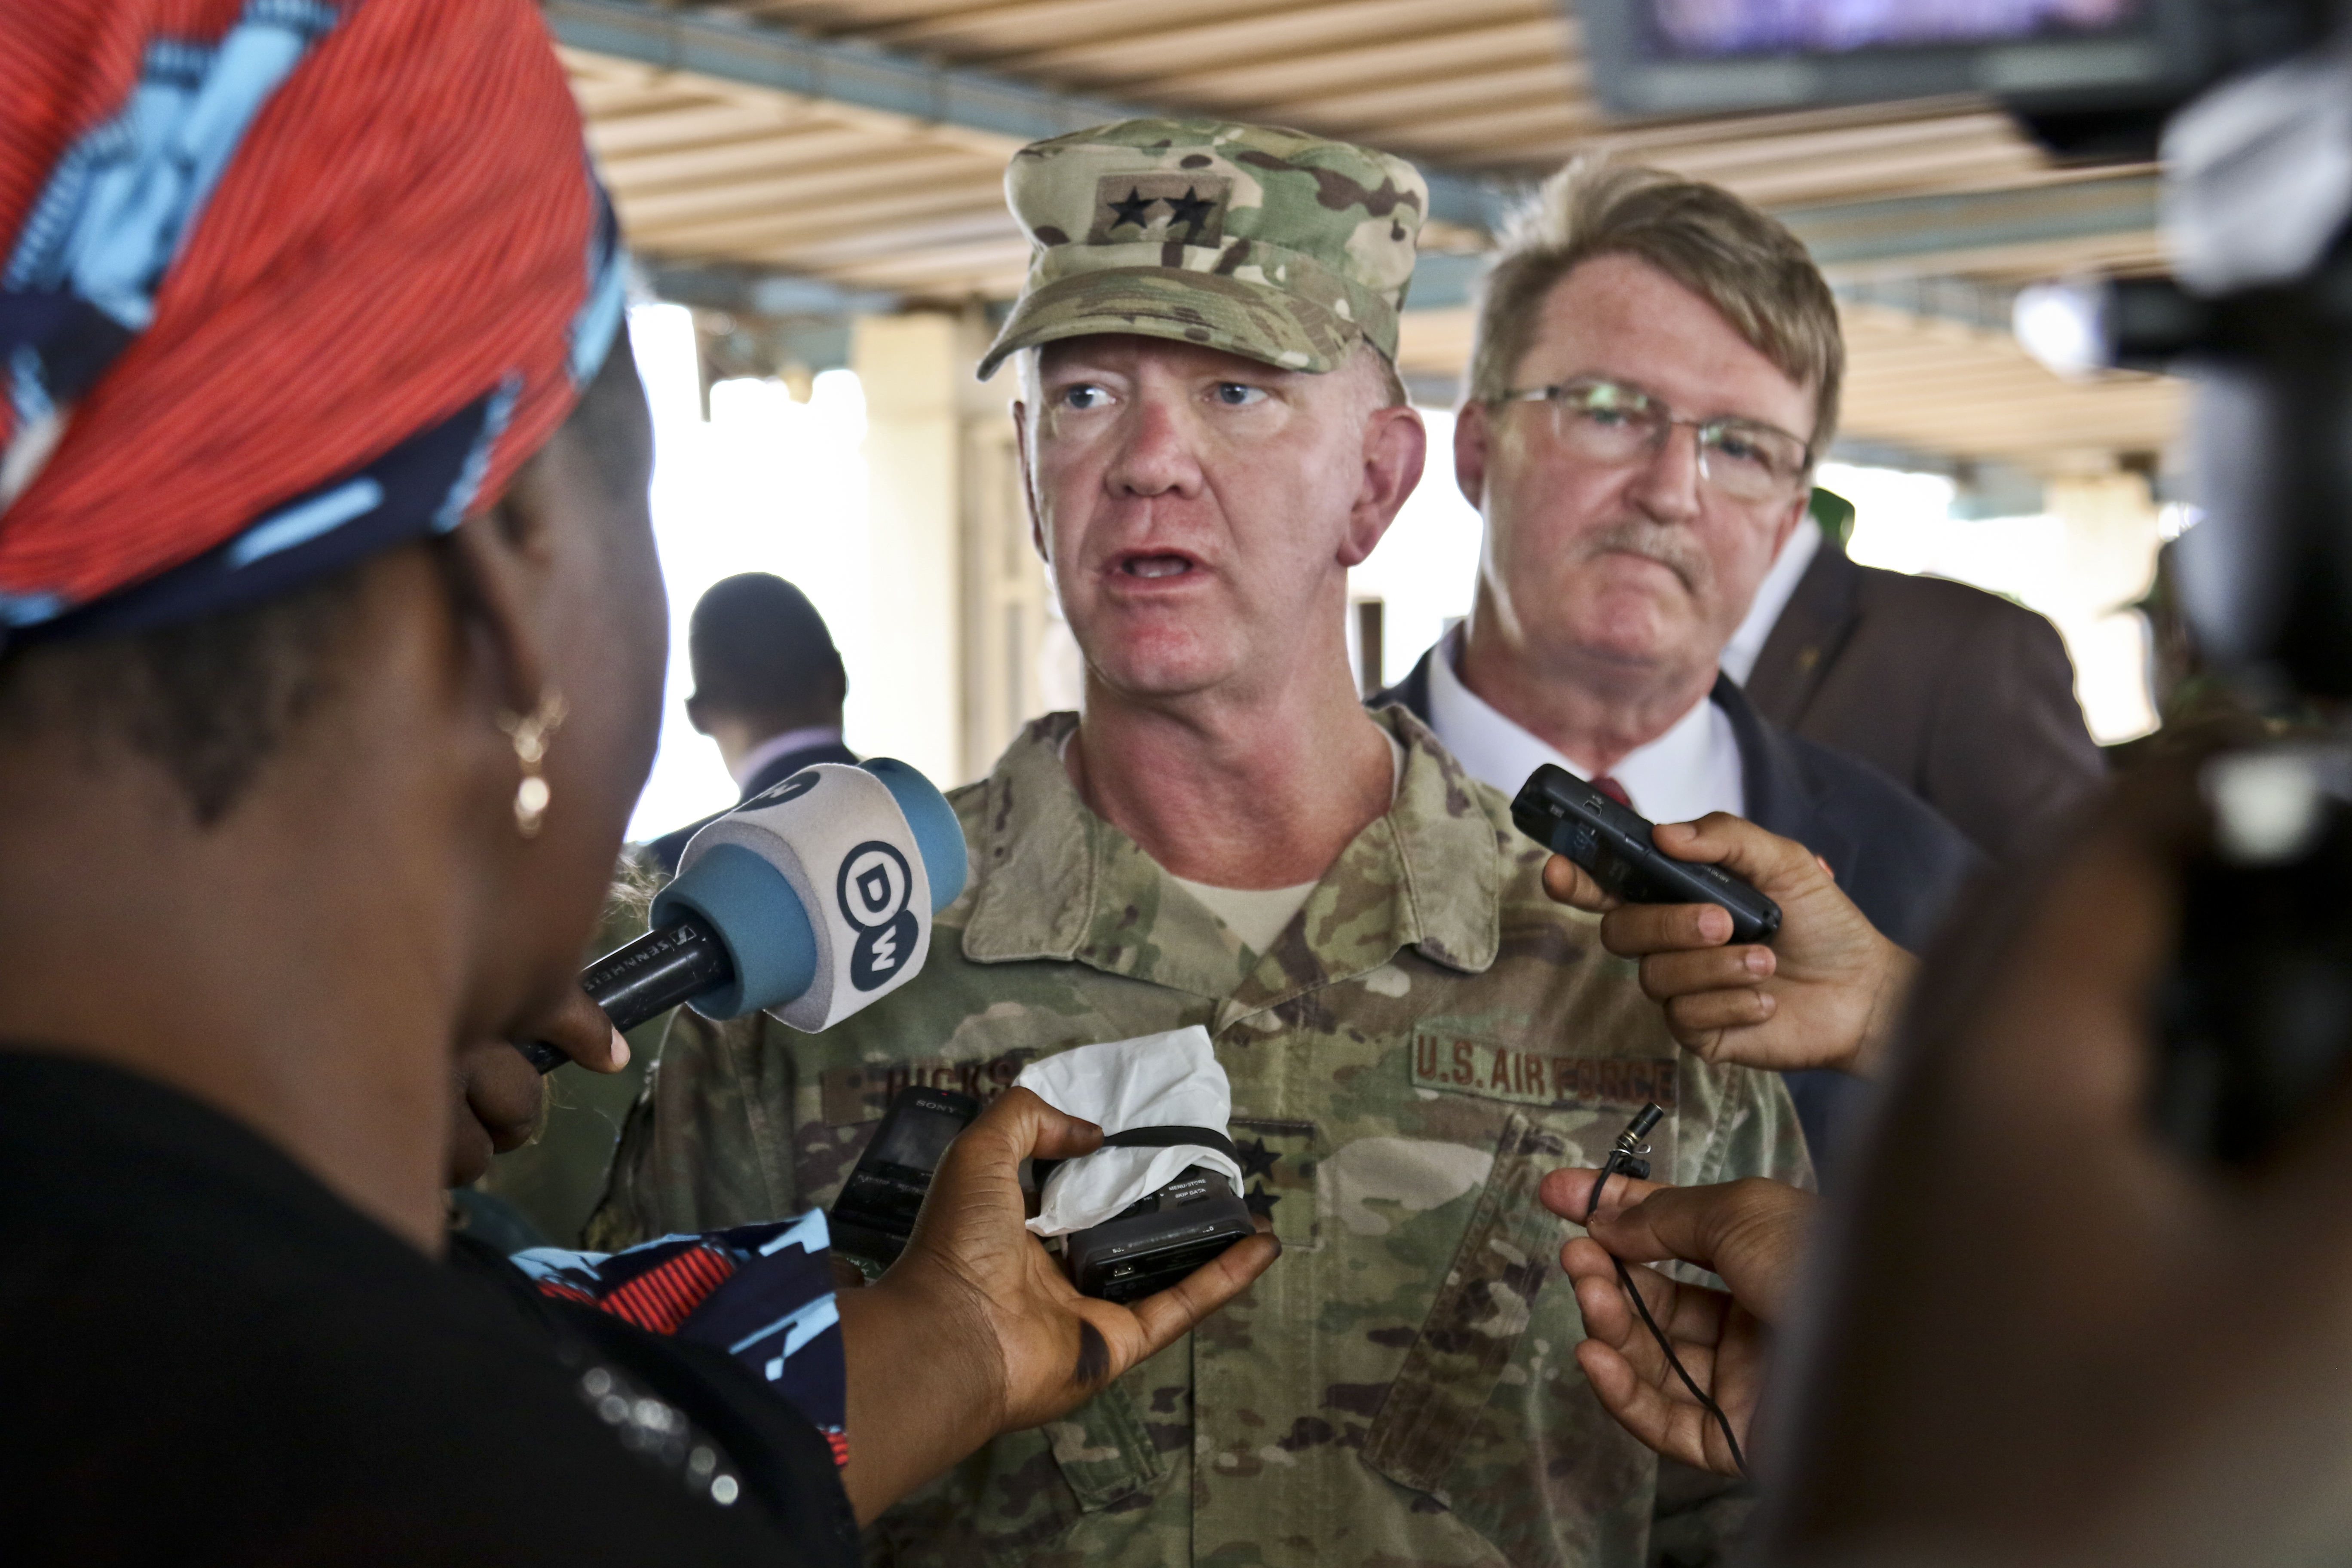 NIAMEY, Niger – U.S. Air Force Maj. Gen. Marcus Hicks, commander, Special Operations Command Africa, is interviewed by local media after the opening ceremony of Flintlock 2018 in Niamey, Niger, April 11, 2018. Flintlock, hosted by Niger, with key outstations at Burkina Faso and Senegal, is designed to strengthen the ability of key partner nations in the region to counter violent extremist organizations, protect their borders, and provide security for their people. (U.S. Army Photo by Sgt. Heather Doppke/79th Theater Sustainment Command)